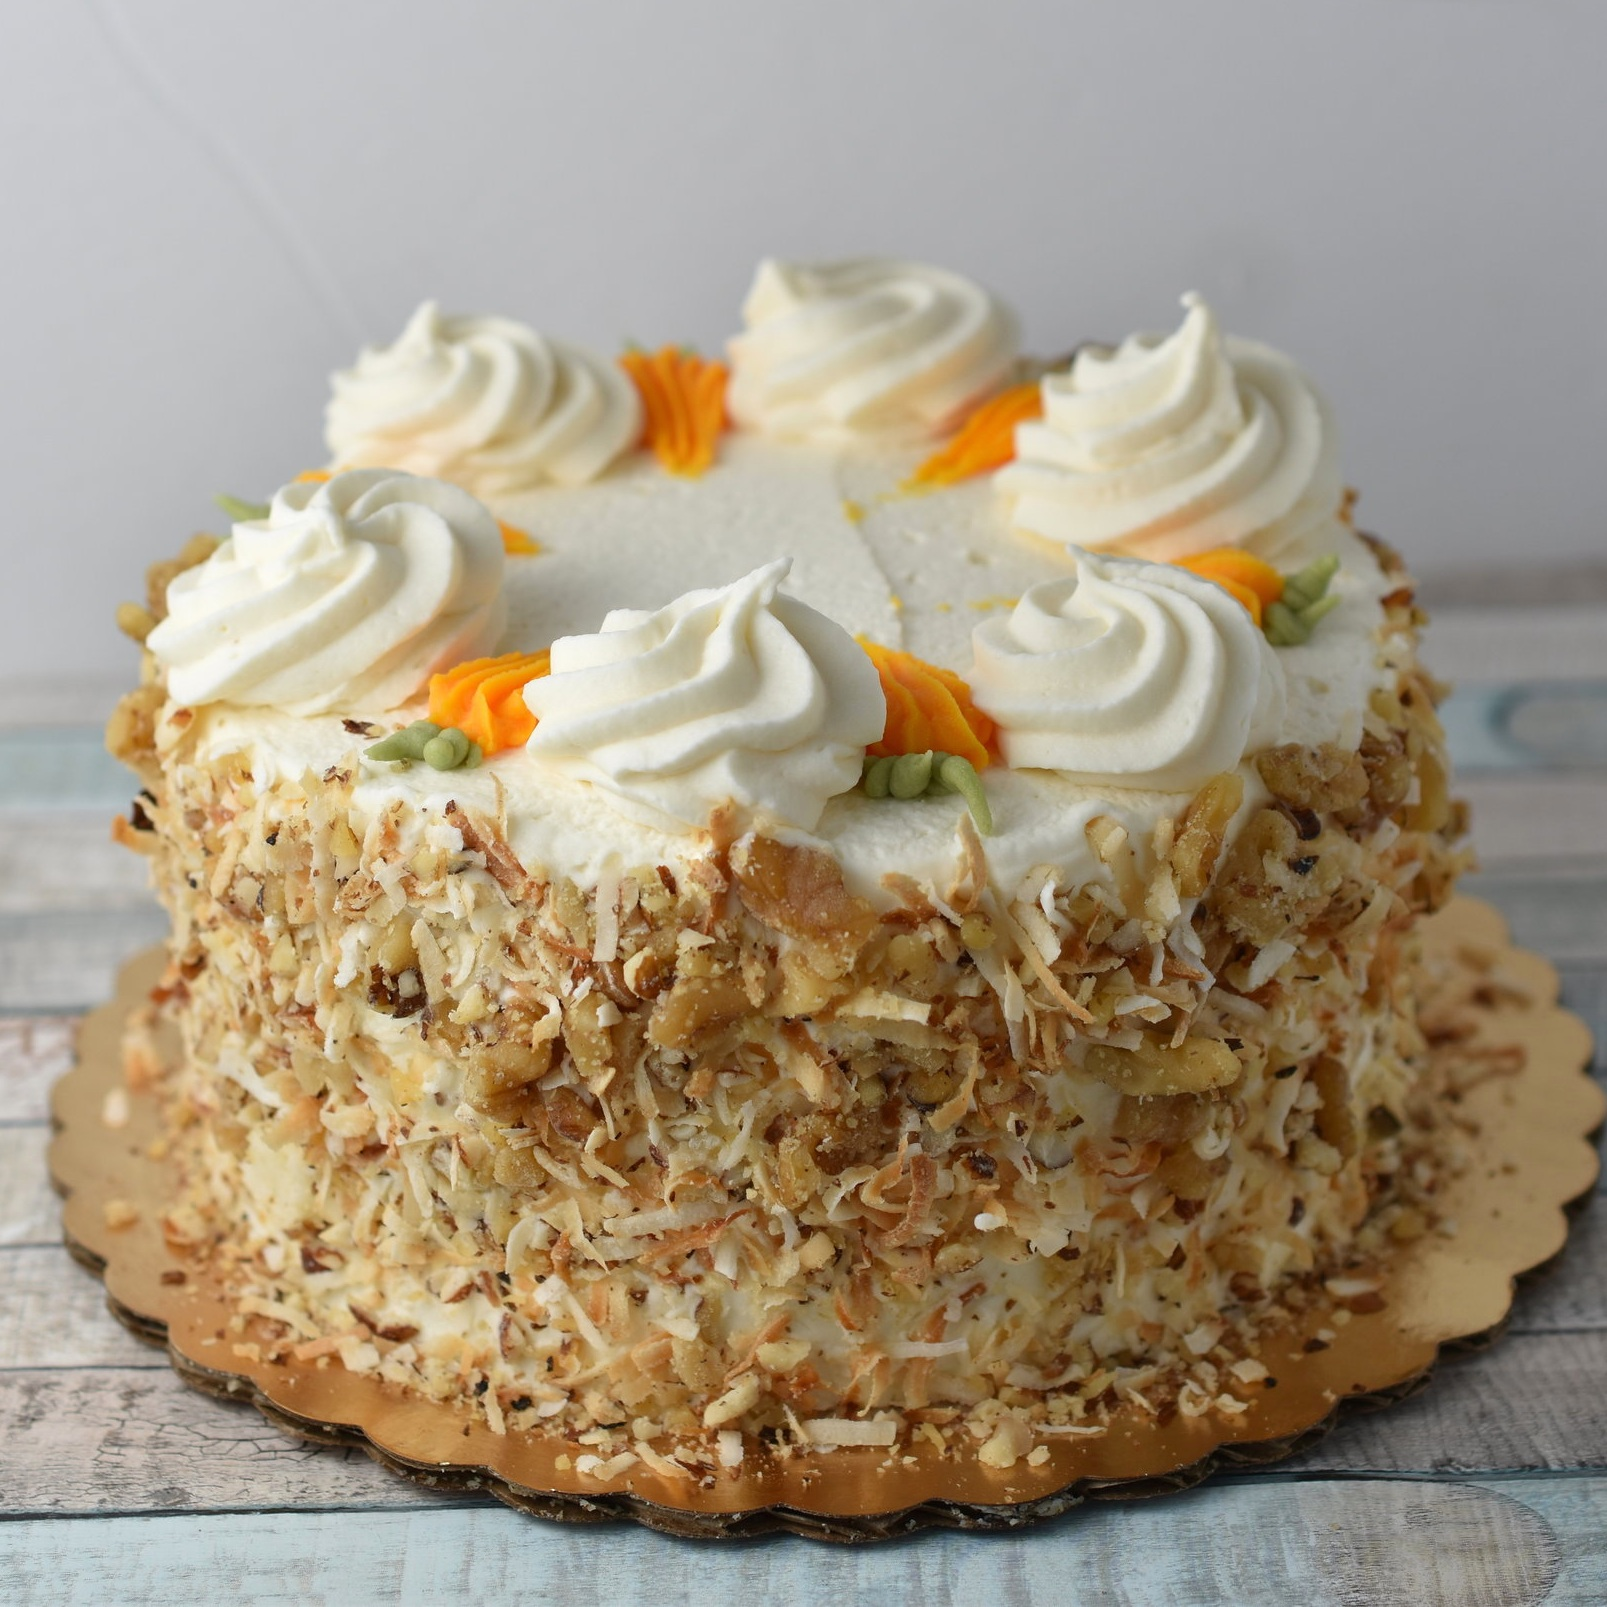 Carrot  - Spiced carrot cake and cream cheese frosting. Go for an extra wow and add caramel filling.